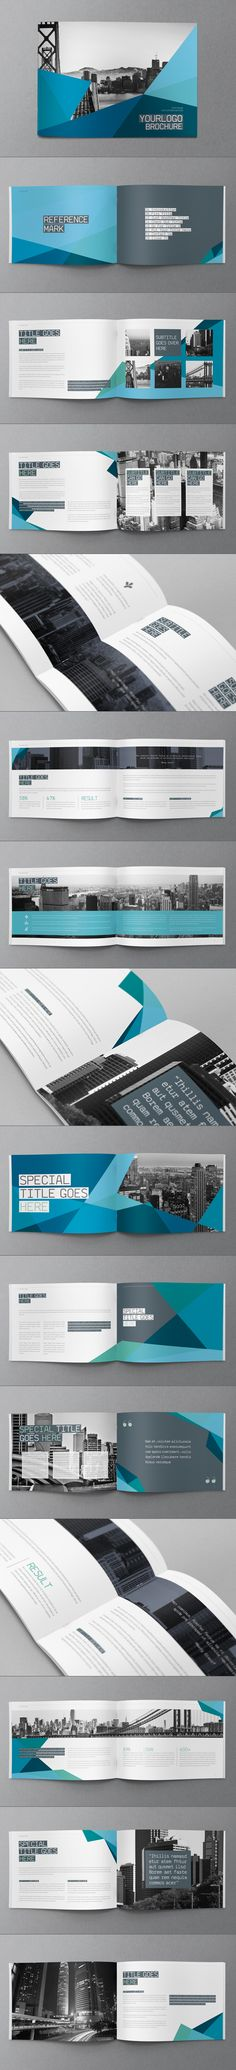 Buy Blue Modern Brochure by AbraDesign on GraphicRiver. BLUE MODERN BROCHURE This brochure is an ideal way to showcase your travel business in an original way. Design Brochure, Booklet Design, Brochure Layout, Graphic Design Layouts, Graphic Design Inspiration, Layout Design, Creative Brochure, Editorial Design, Editorial Layout